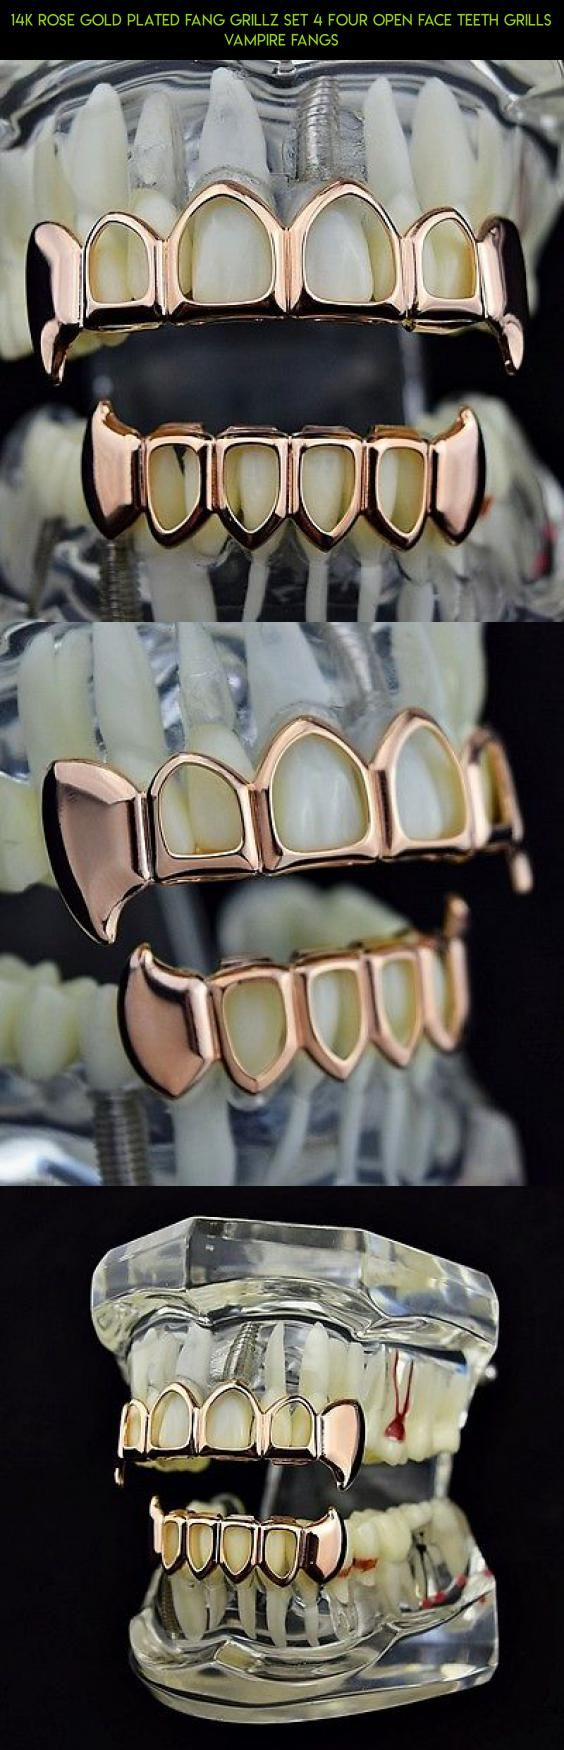 14k Rose Gold Plated Fang Grillz Set 4 Four Open Face Teeth Grills Vampire Fangs Fpv Camera Racing Rose Drone T Grillz Fang Grillz Grills Teeth